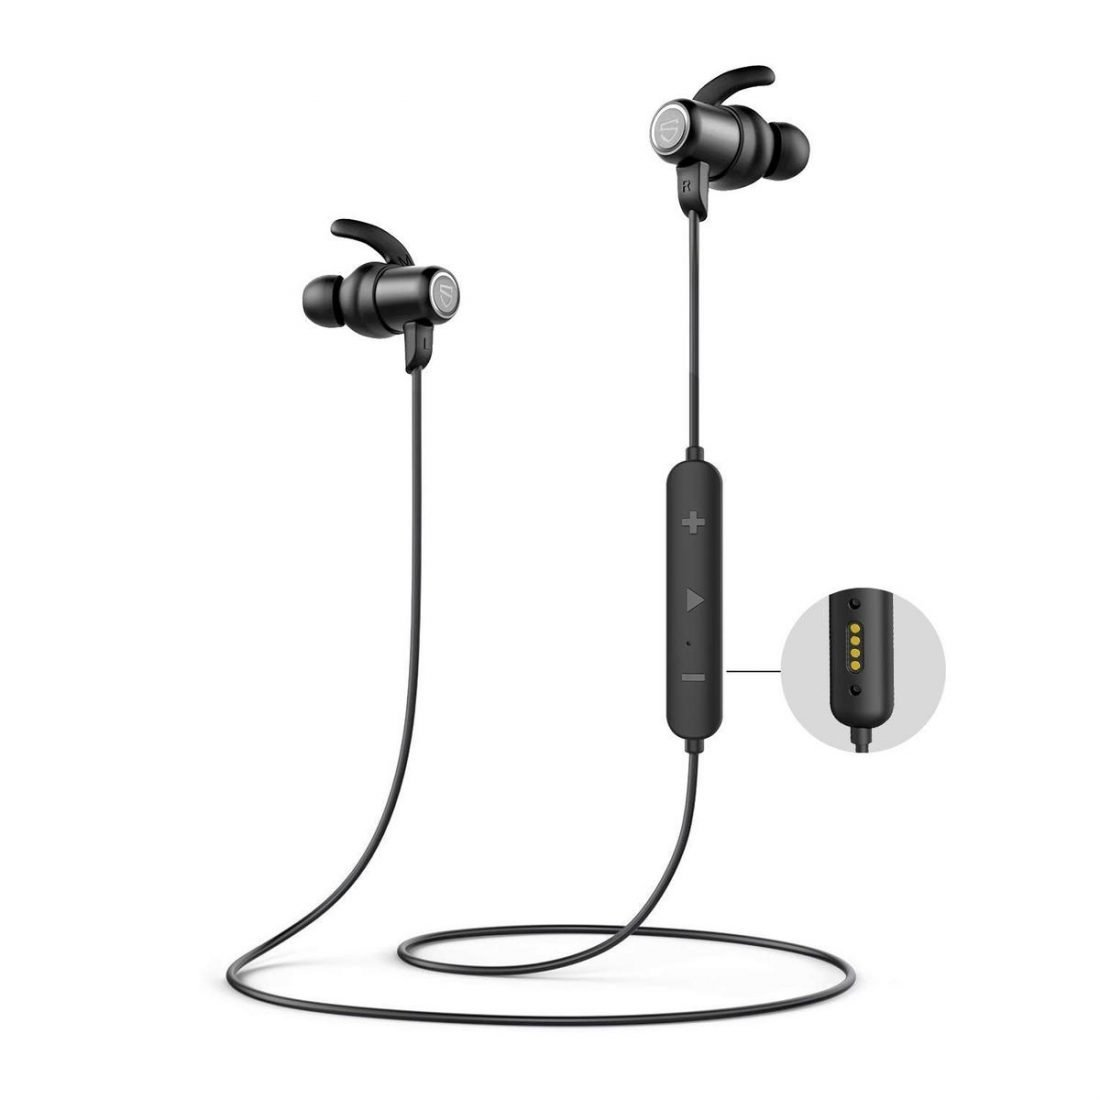 SOUNDPEATS Q35 HD Bluetooth Earbuds (From: Amazon)